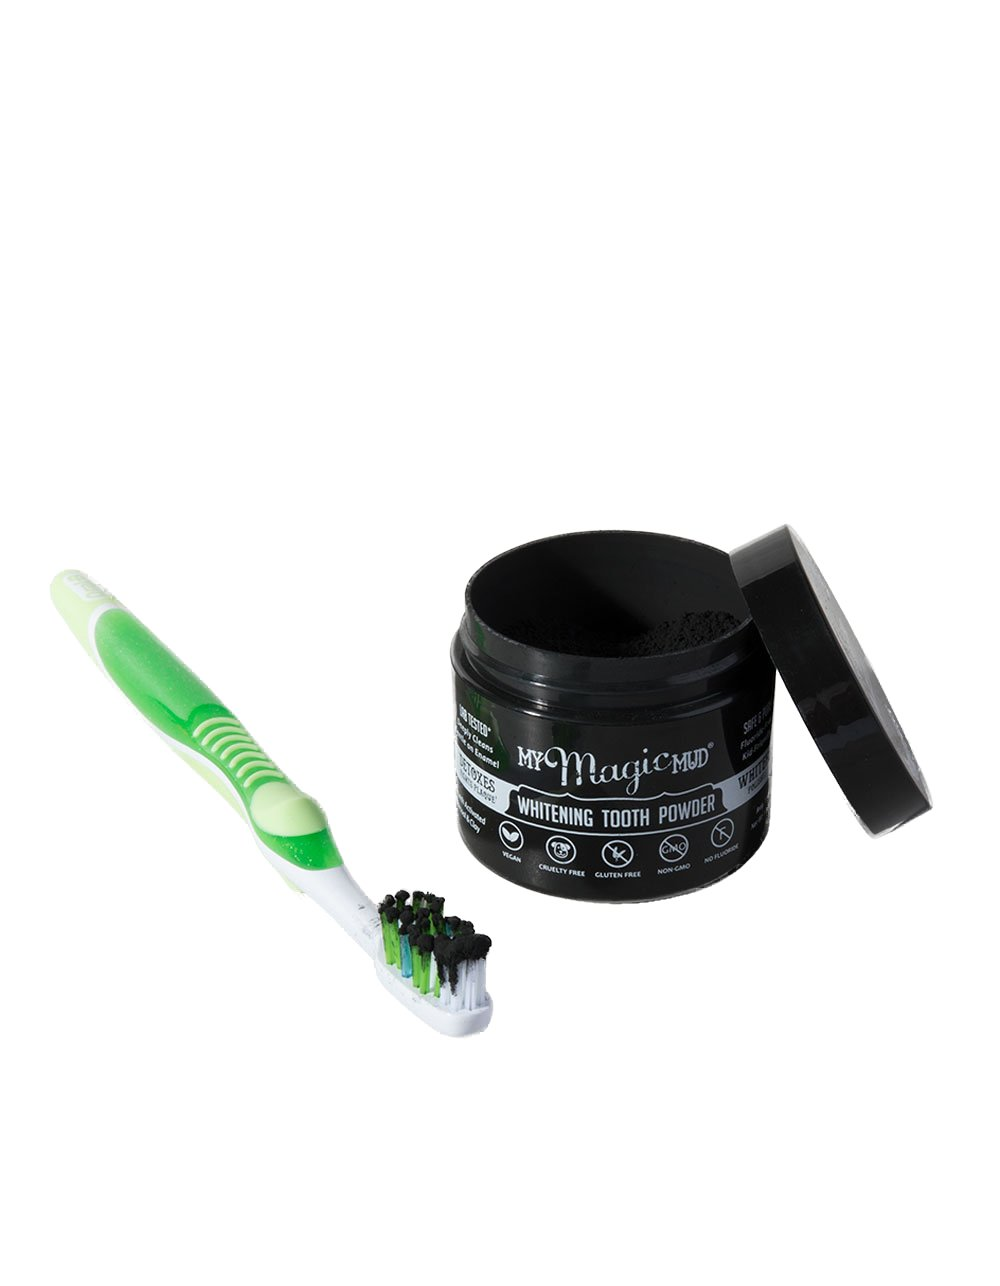 My Magic Mud Activated Charcoal Tooth Powder for Whitening, 100% Natural Oral Care, Fluoride-Free, Non-GMO, Original, 150 uses, 1.06 oz.